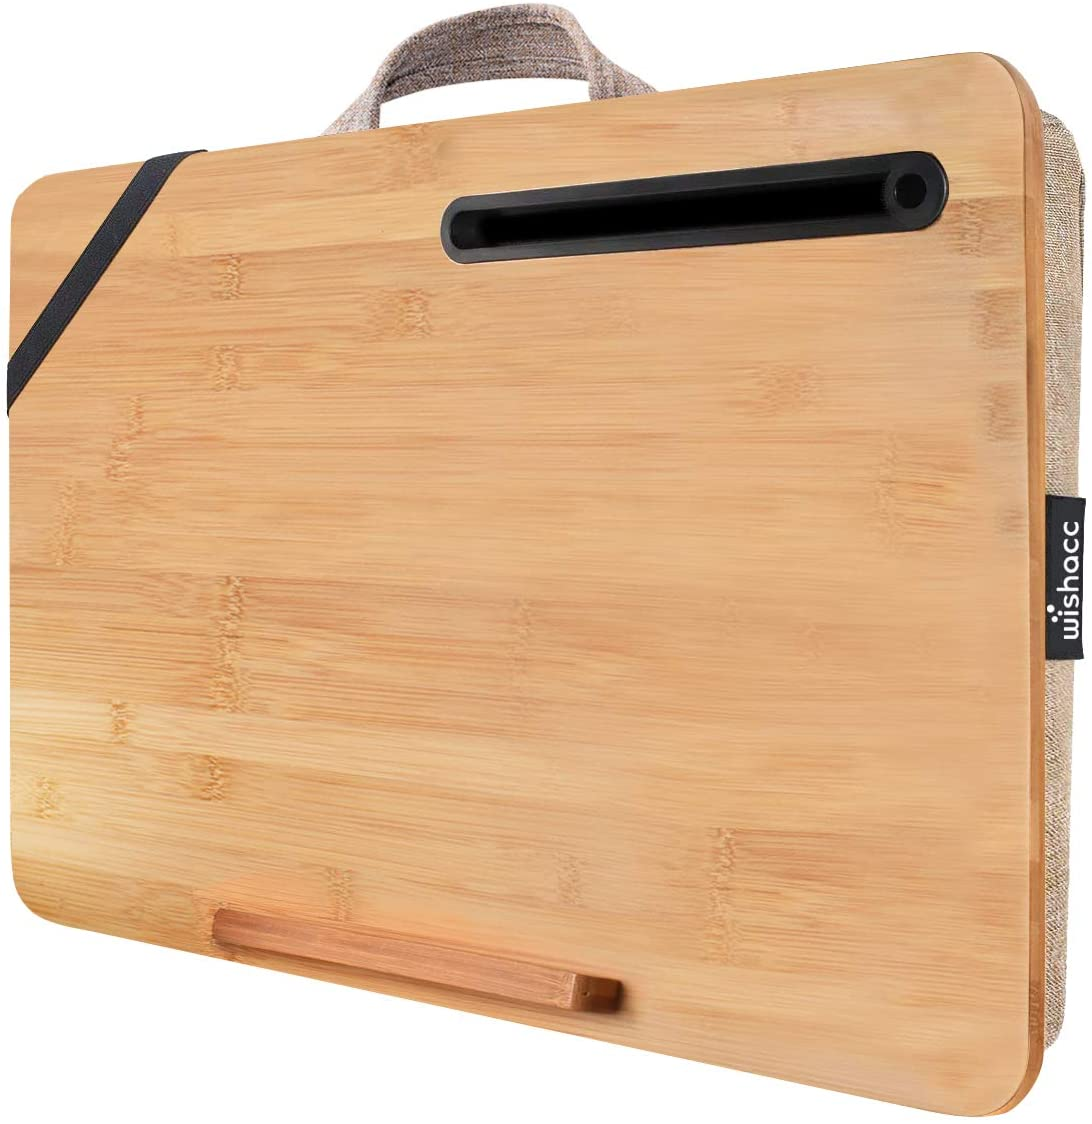 Oversized Lap Desk wishacc Manufacturer OFFicial shop Portable for Bamboo Max 44% OFF Hom Tray